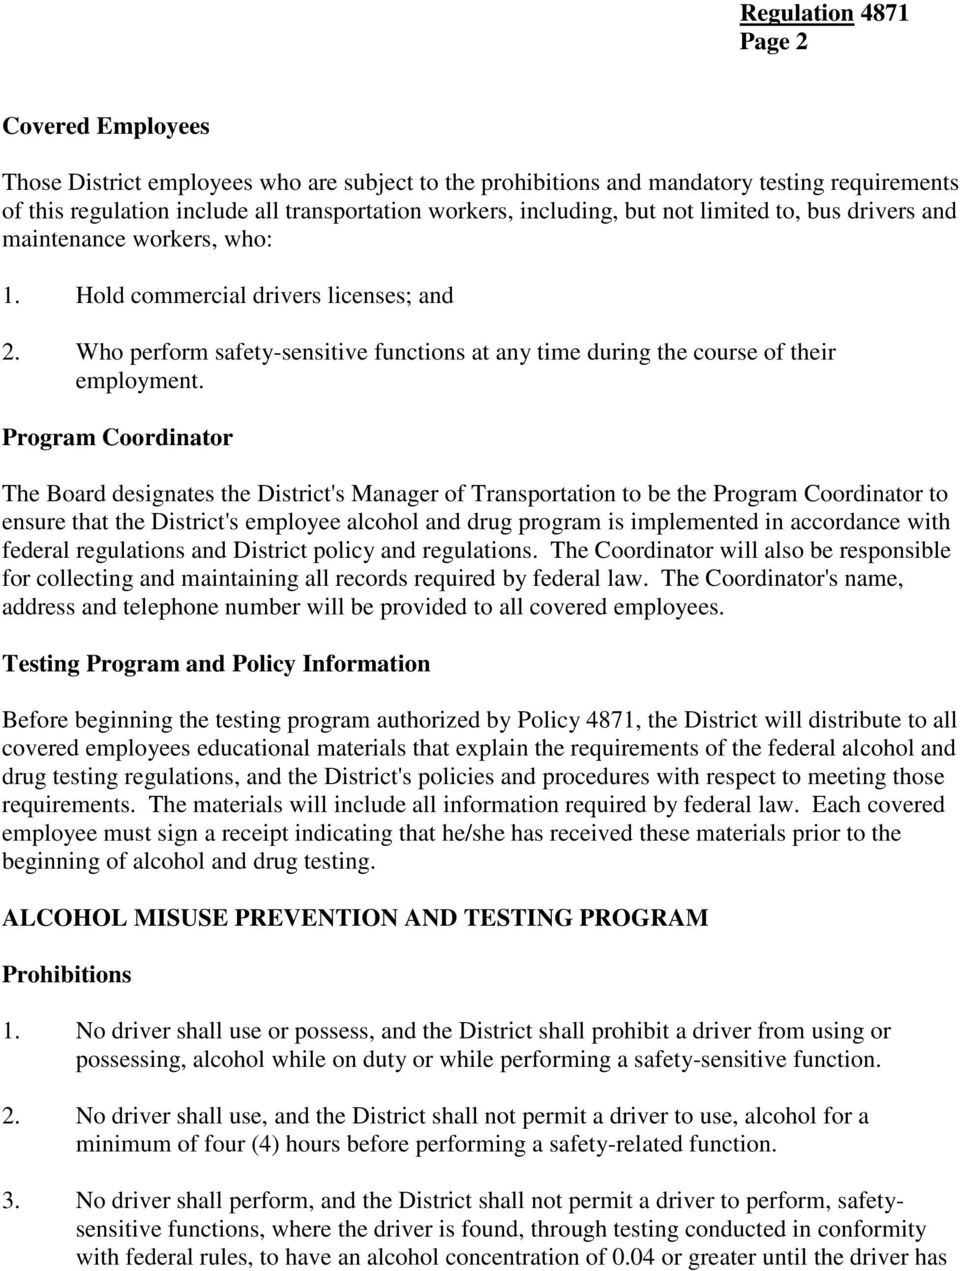 Program Coordinator The Board designates the District's Manager of Transportation to be the Program Coordinator to ensure that the District's employee alcohol and drug program is implemented in